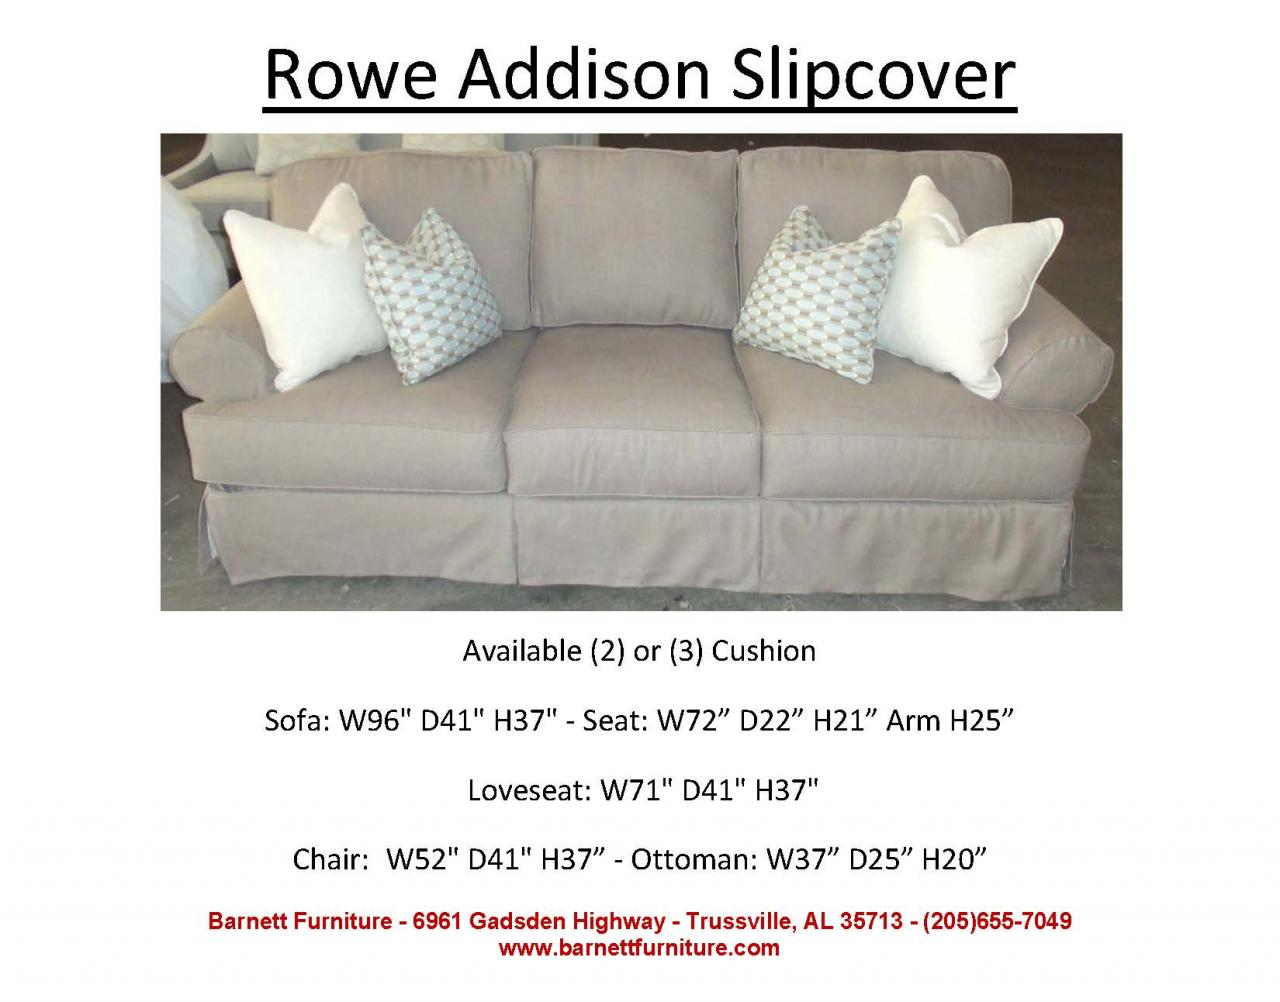 Robin Bruce Havens Slipcover Sofa Rowe Addison